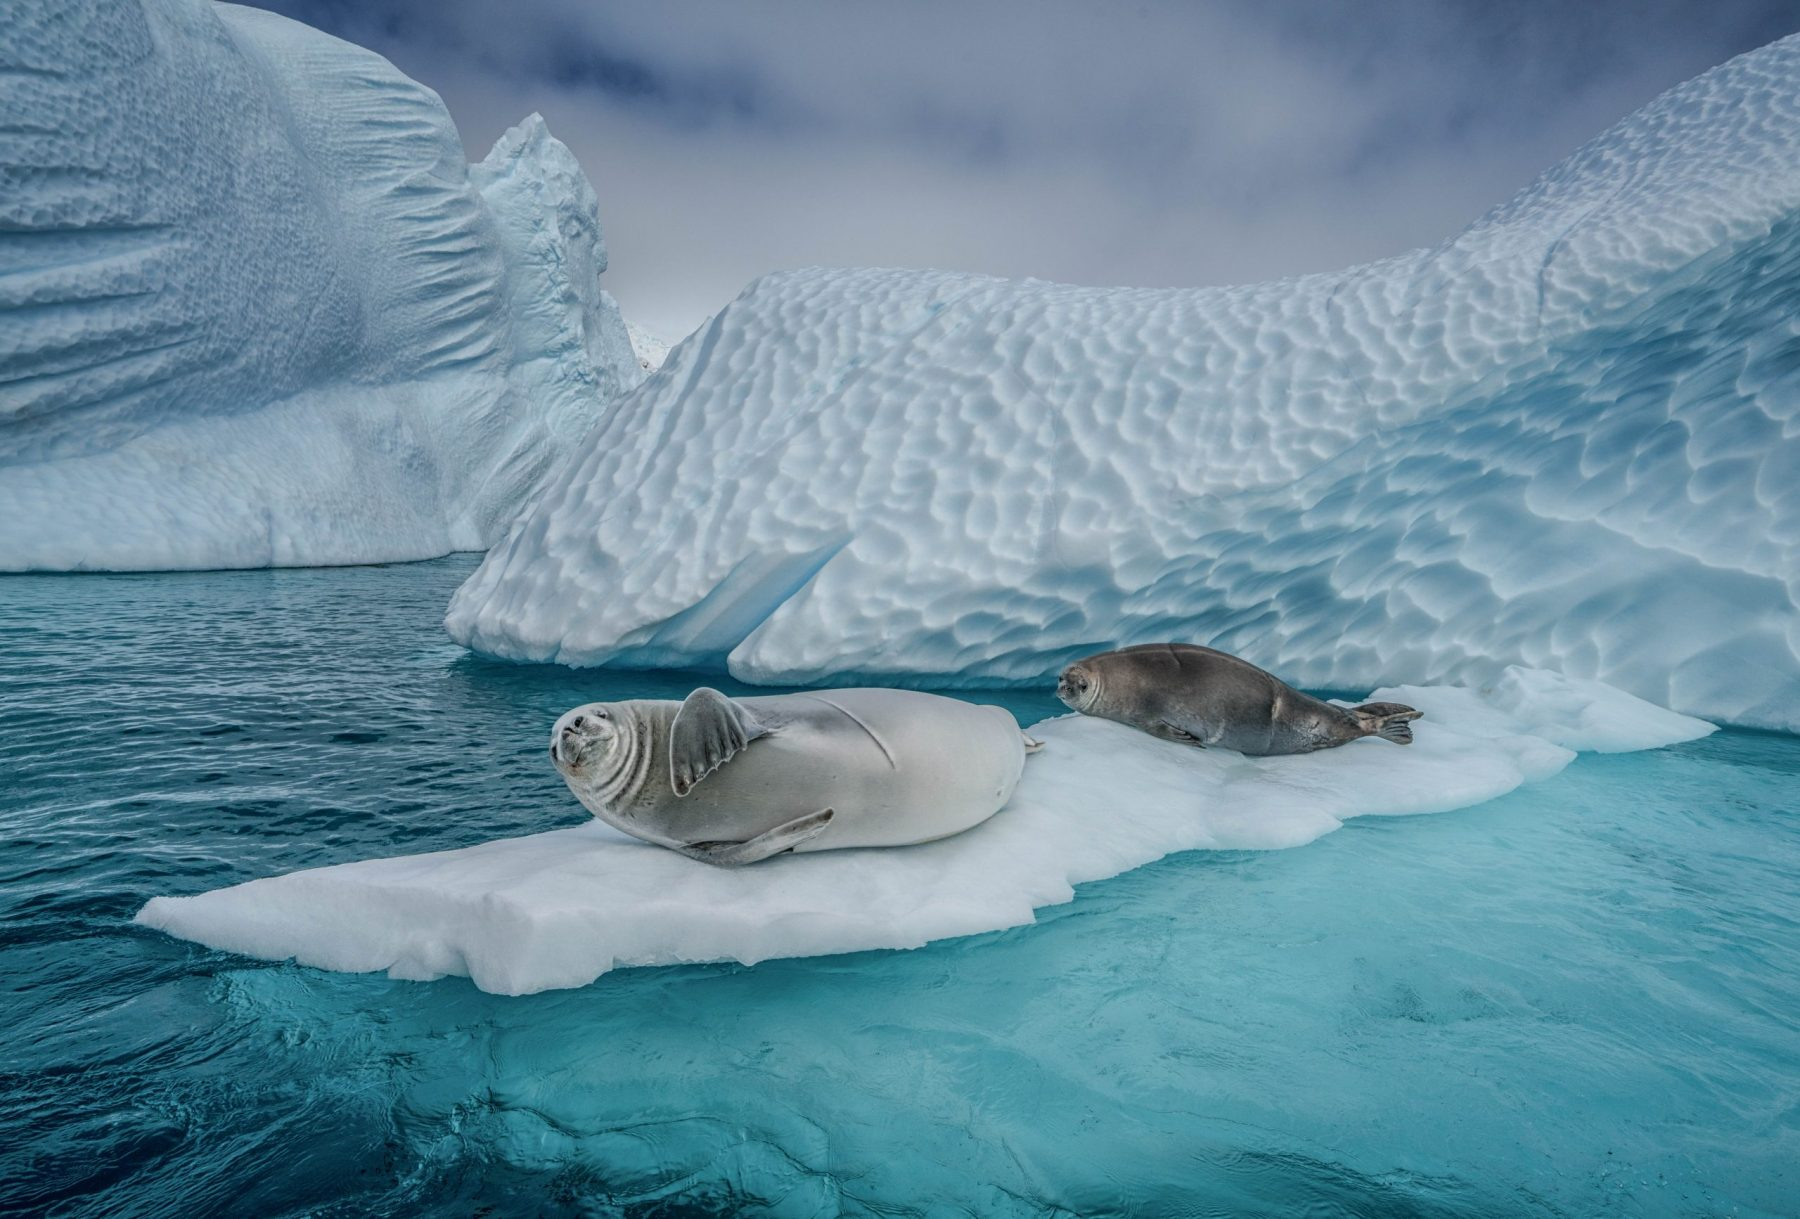 Crabeater seals and icebergs, Cuverville